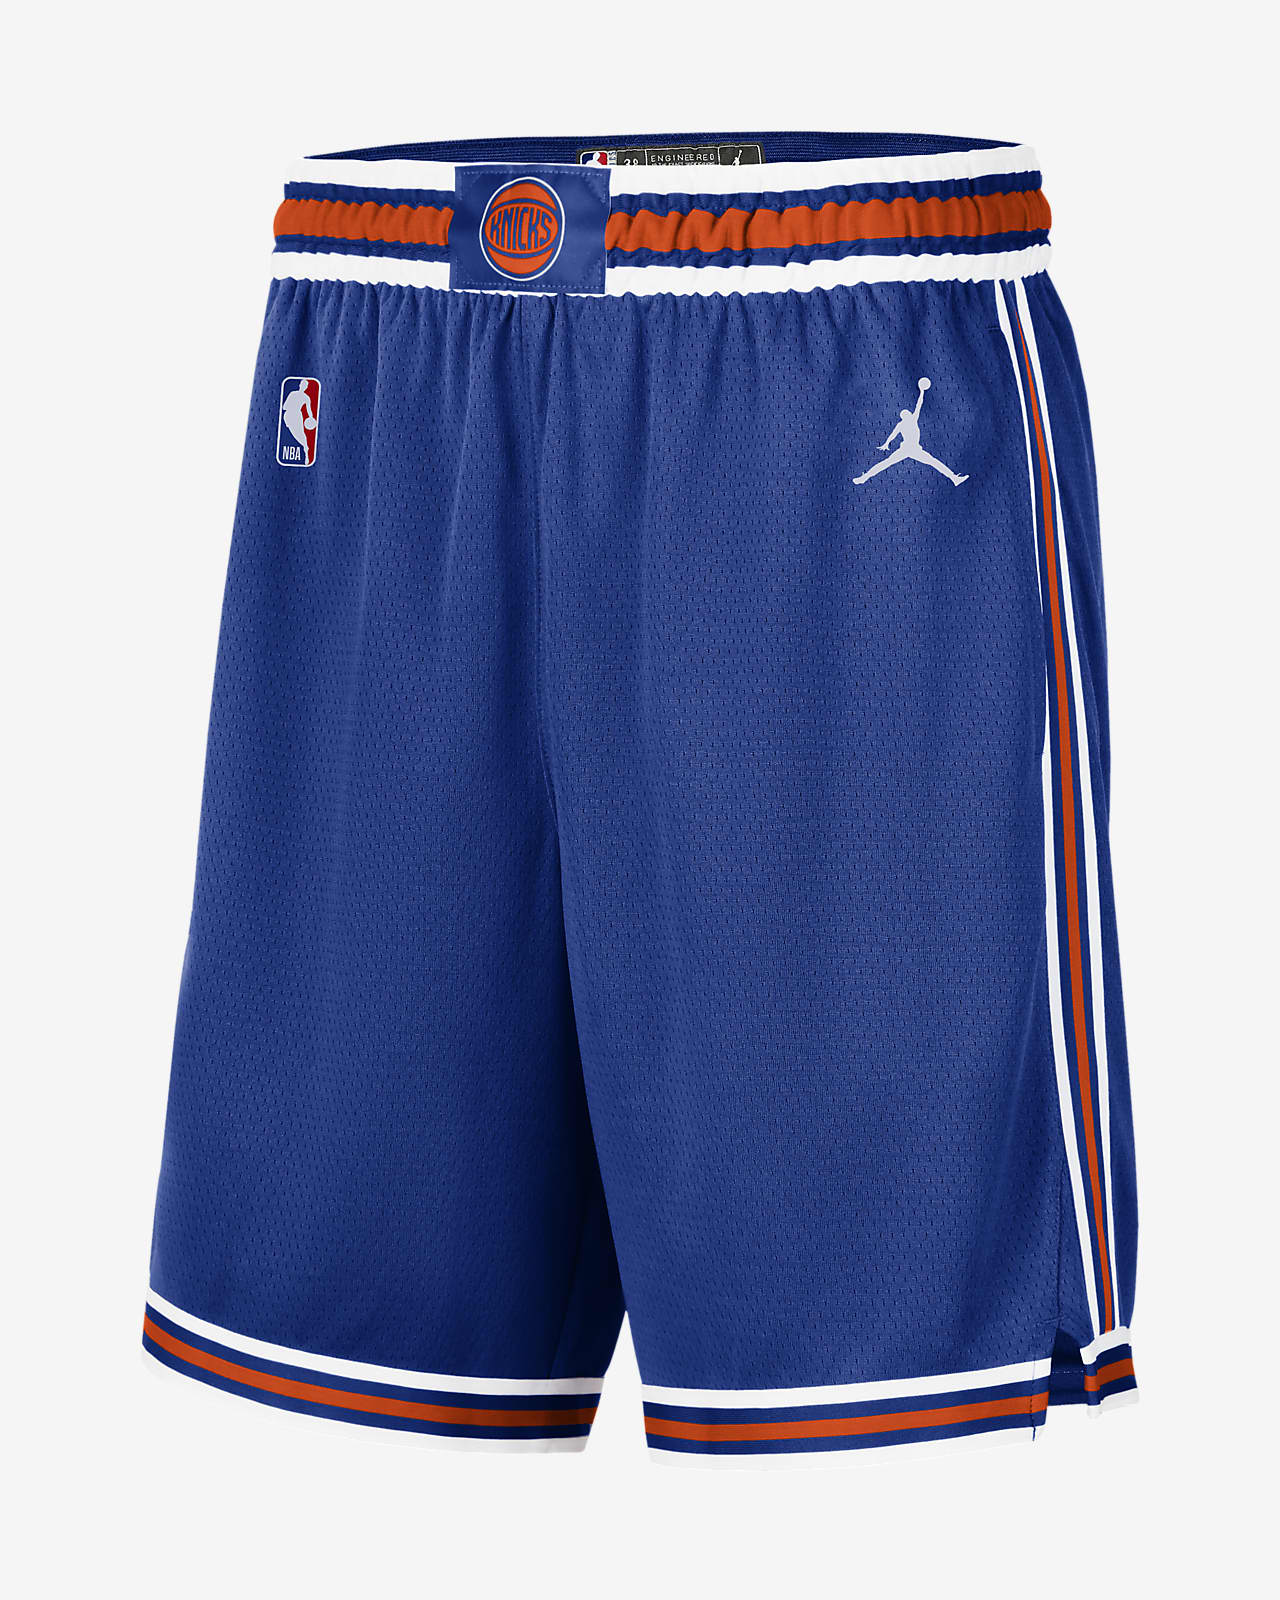 Knicks Statement Edition 2020 Men's Jordan NBA Swingman Shorts